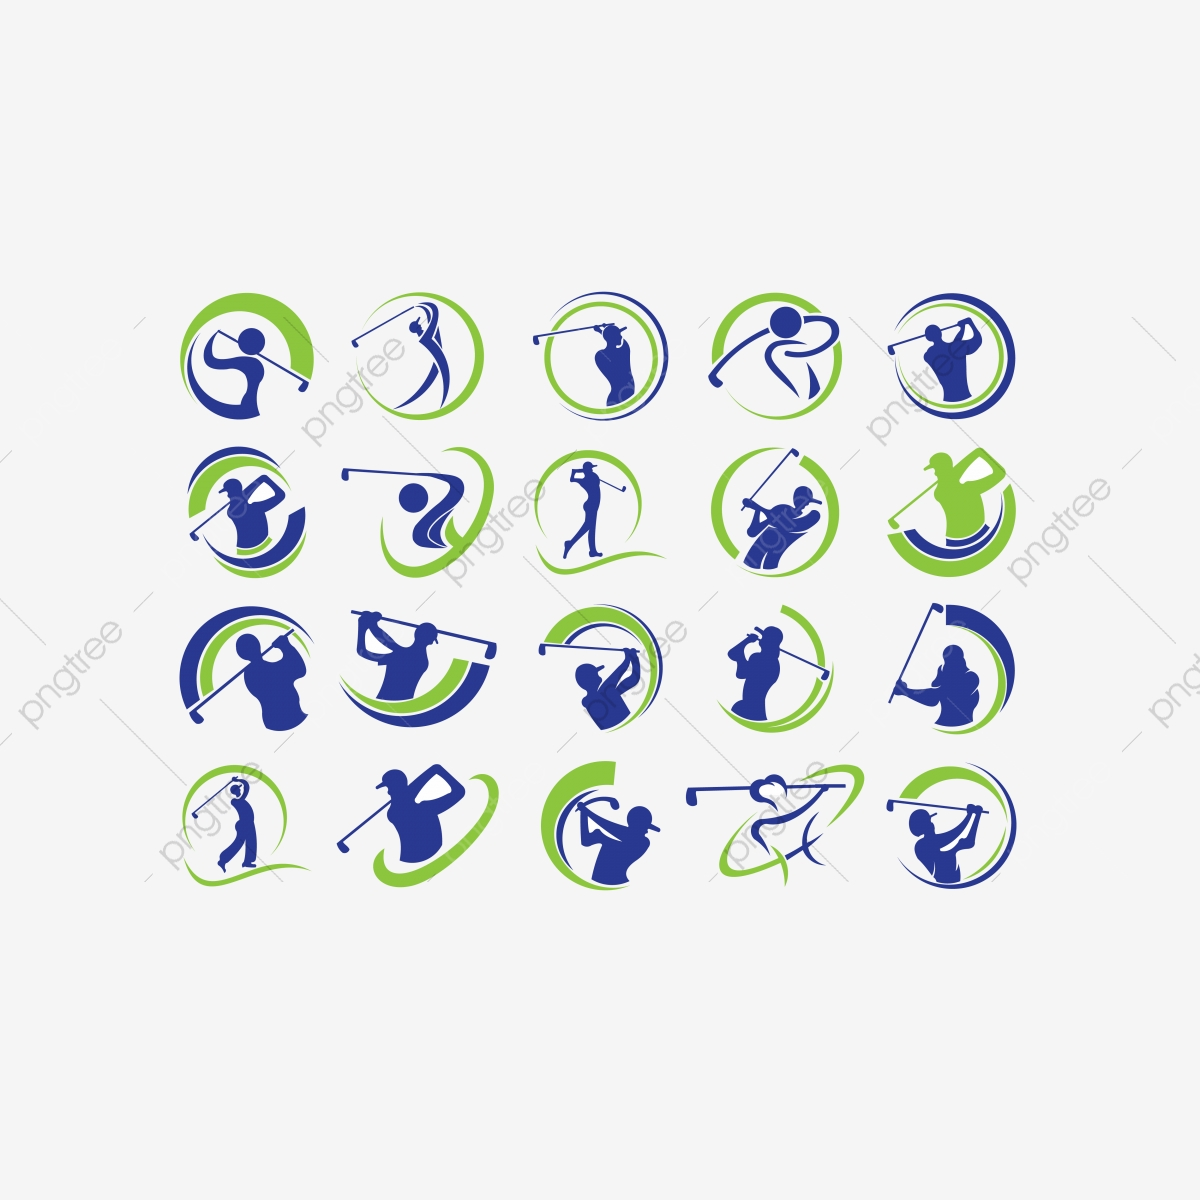 Golf Player Hits Ball Inspiration Logo Design Vector Golf Club Logo Icons Club Icons Golf Icons Png And Vector With Transparent Background For Free Download